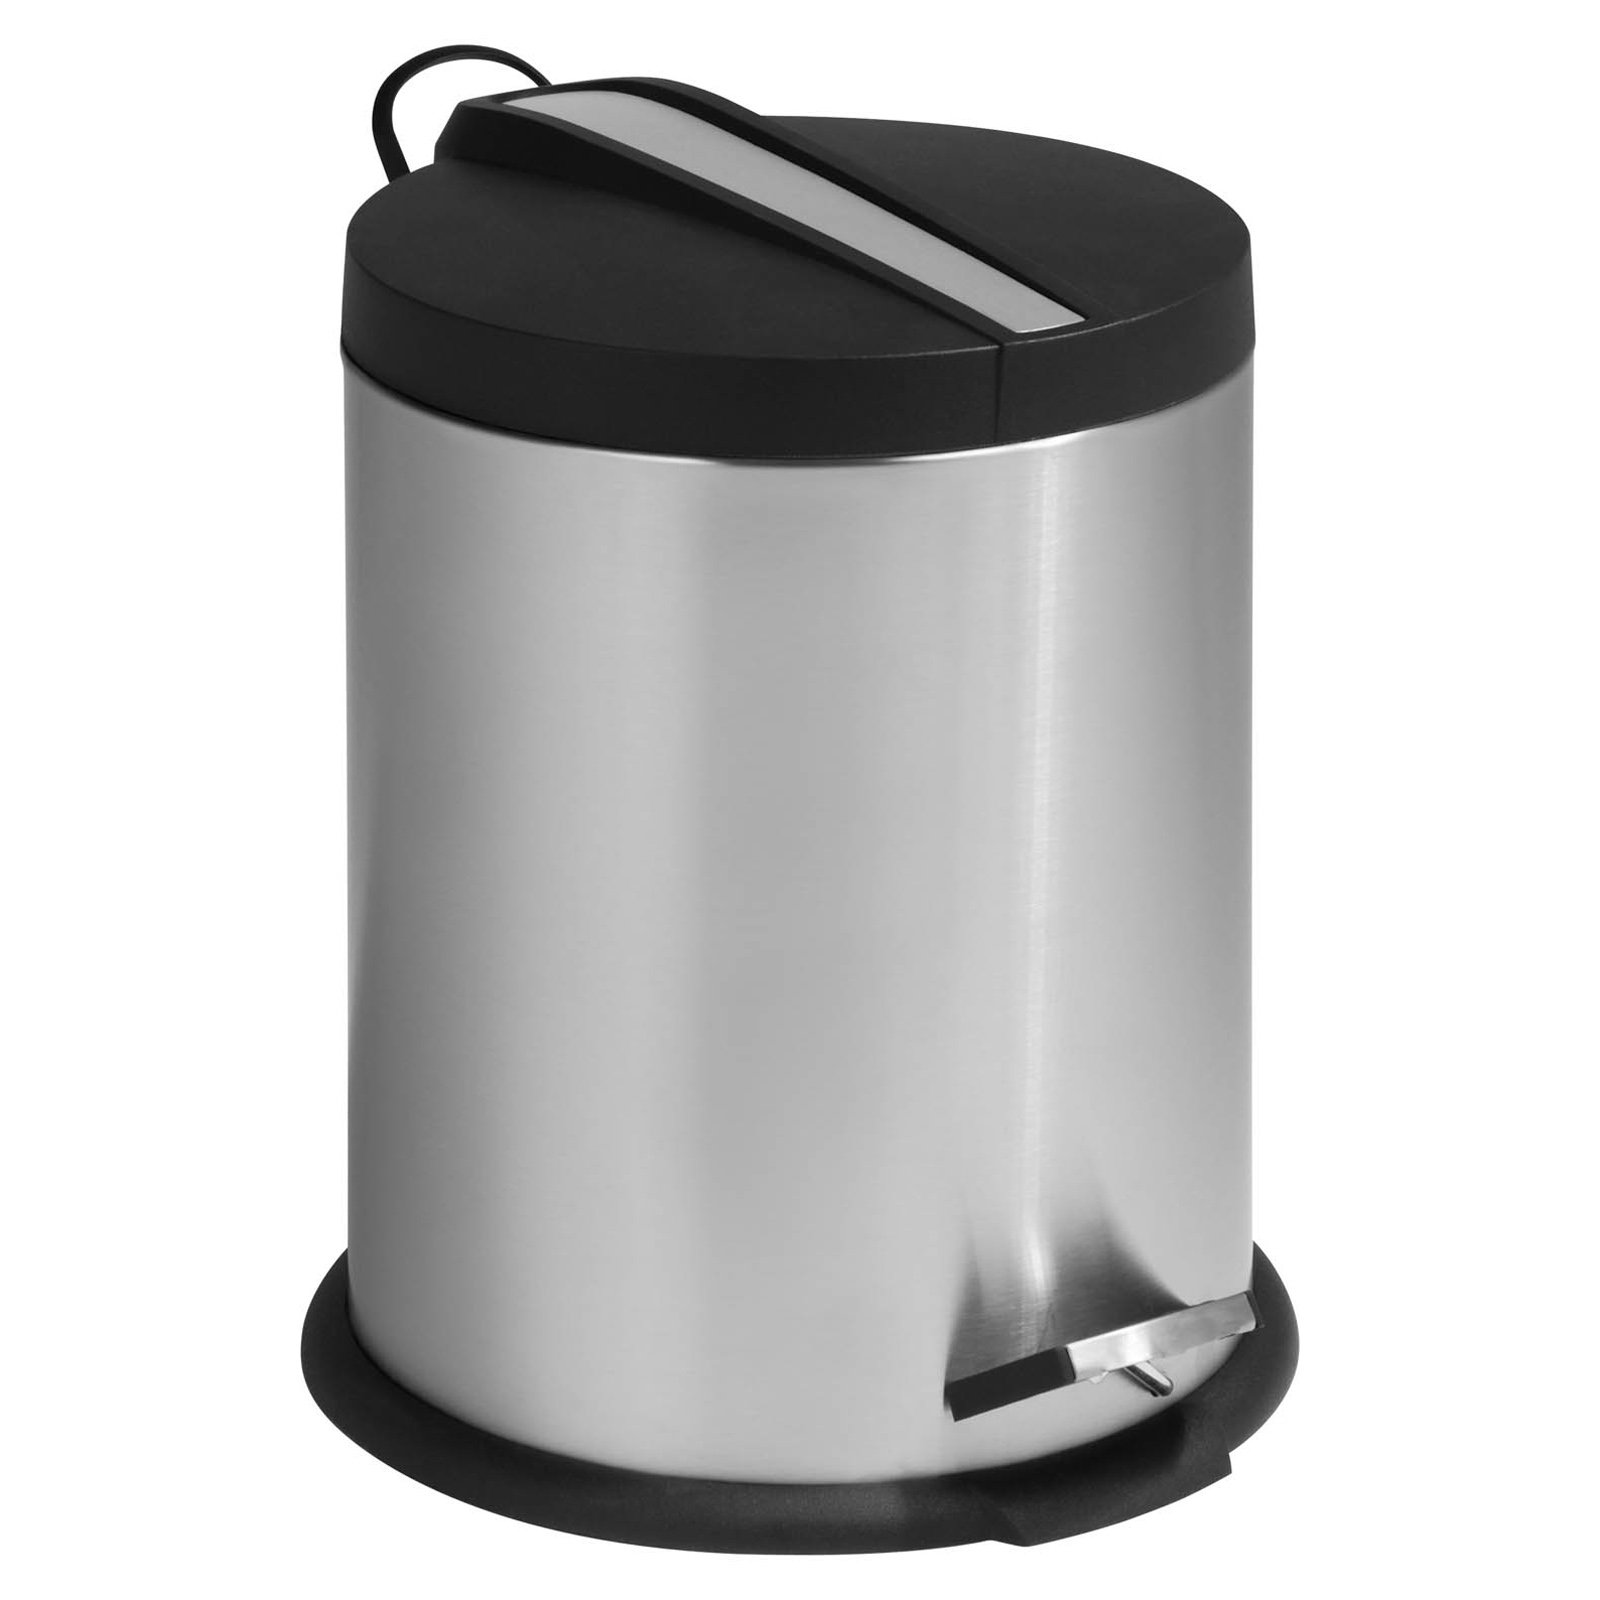 Honey Can Do 1.3 Gallon Round Step Trash Can, Stainless Steel